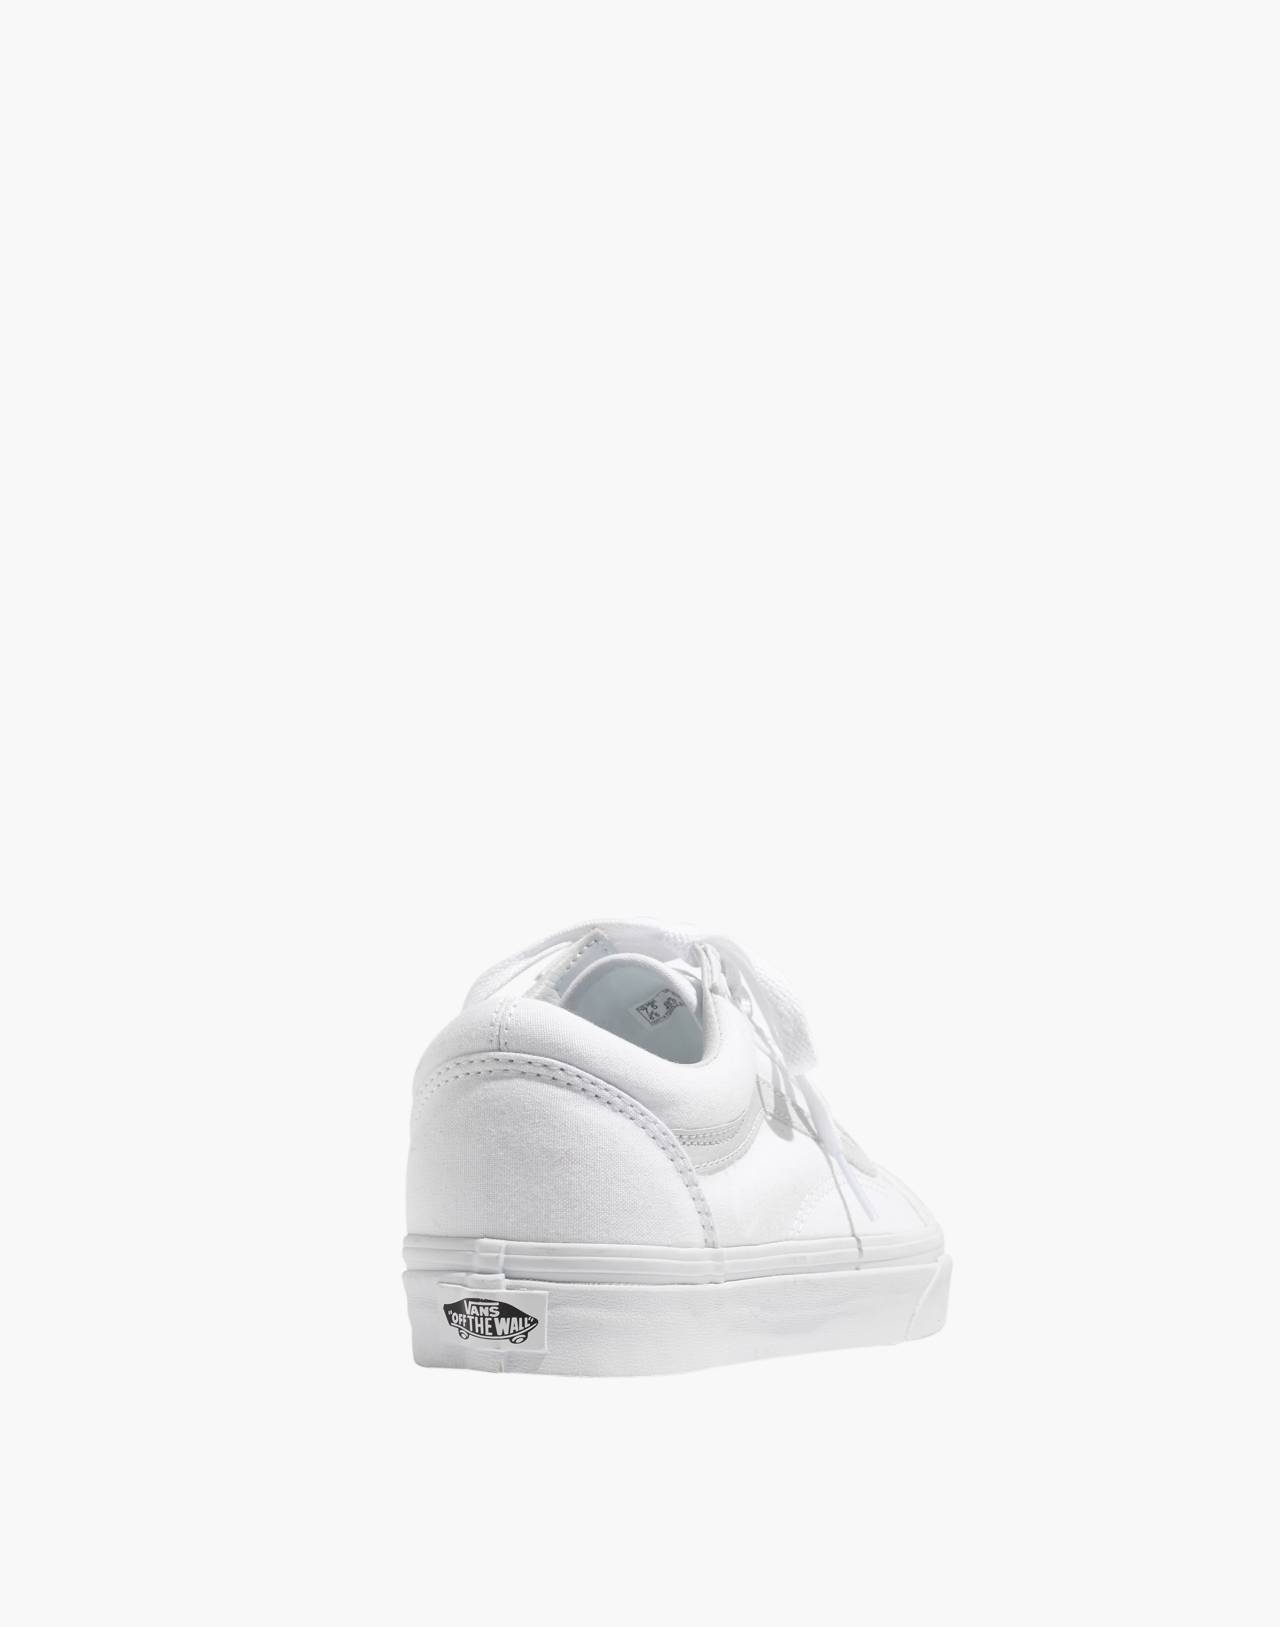 Vans® Unisex Old Skool Lace-Up Sneakers in Canvas and Suede in true white image 4